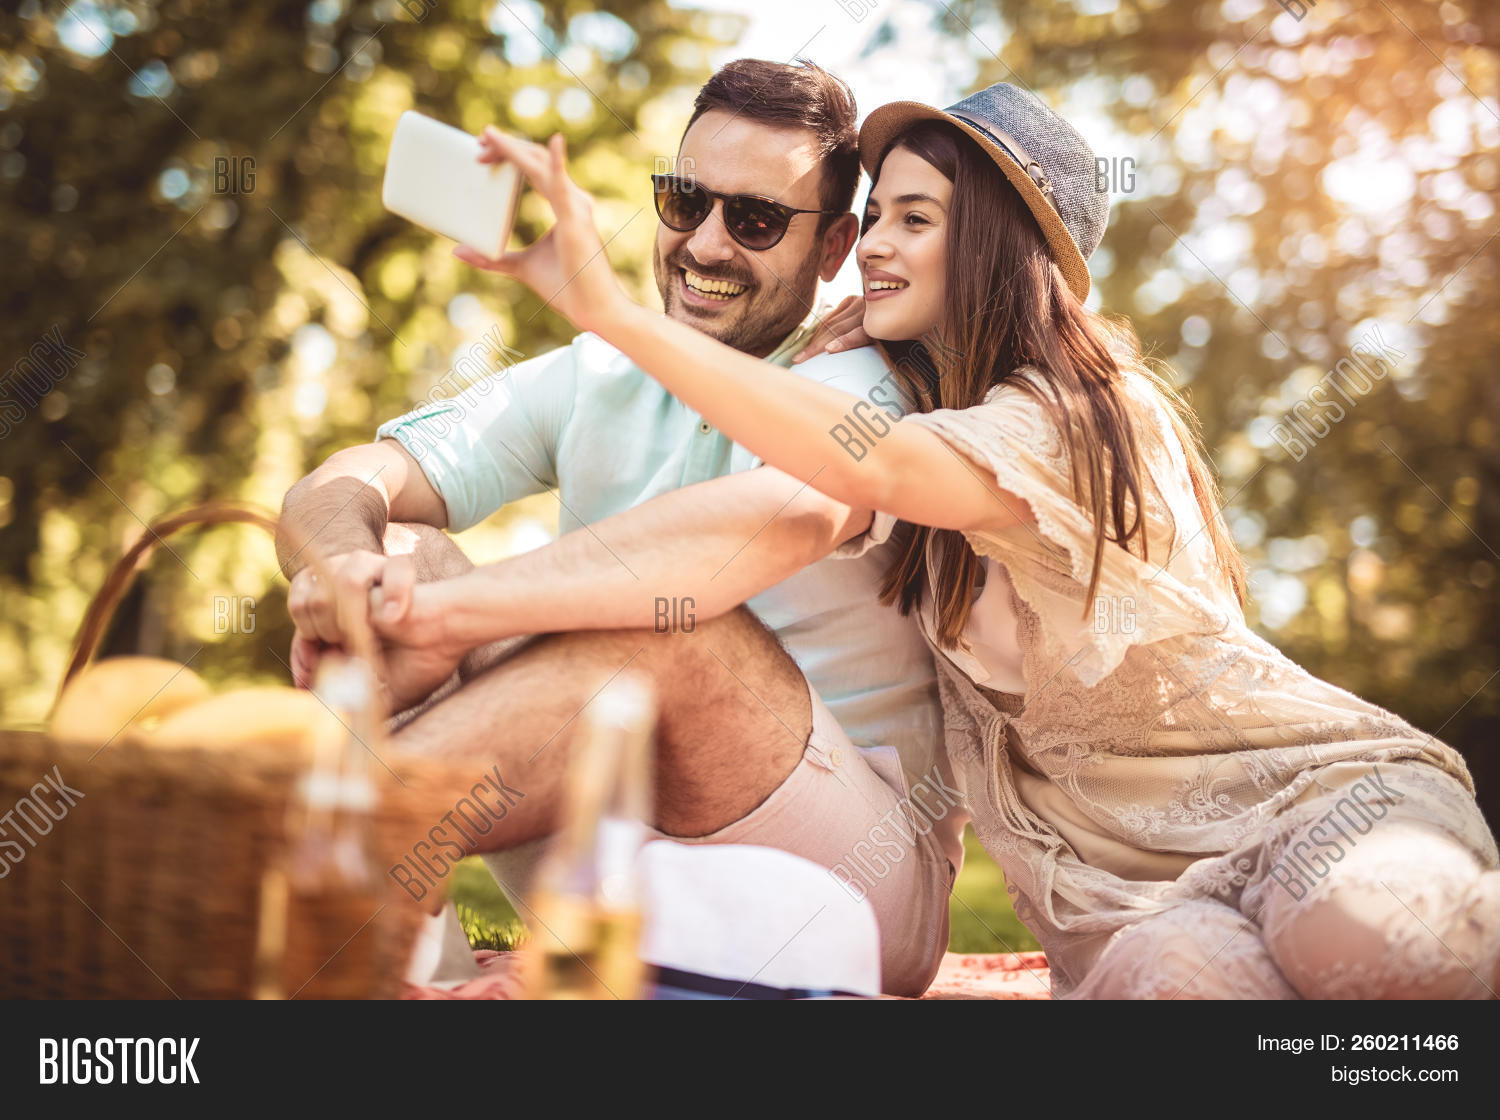 Couple Lying On Picnic Image Photo Free Trial Bigstock